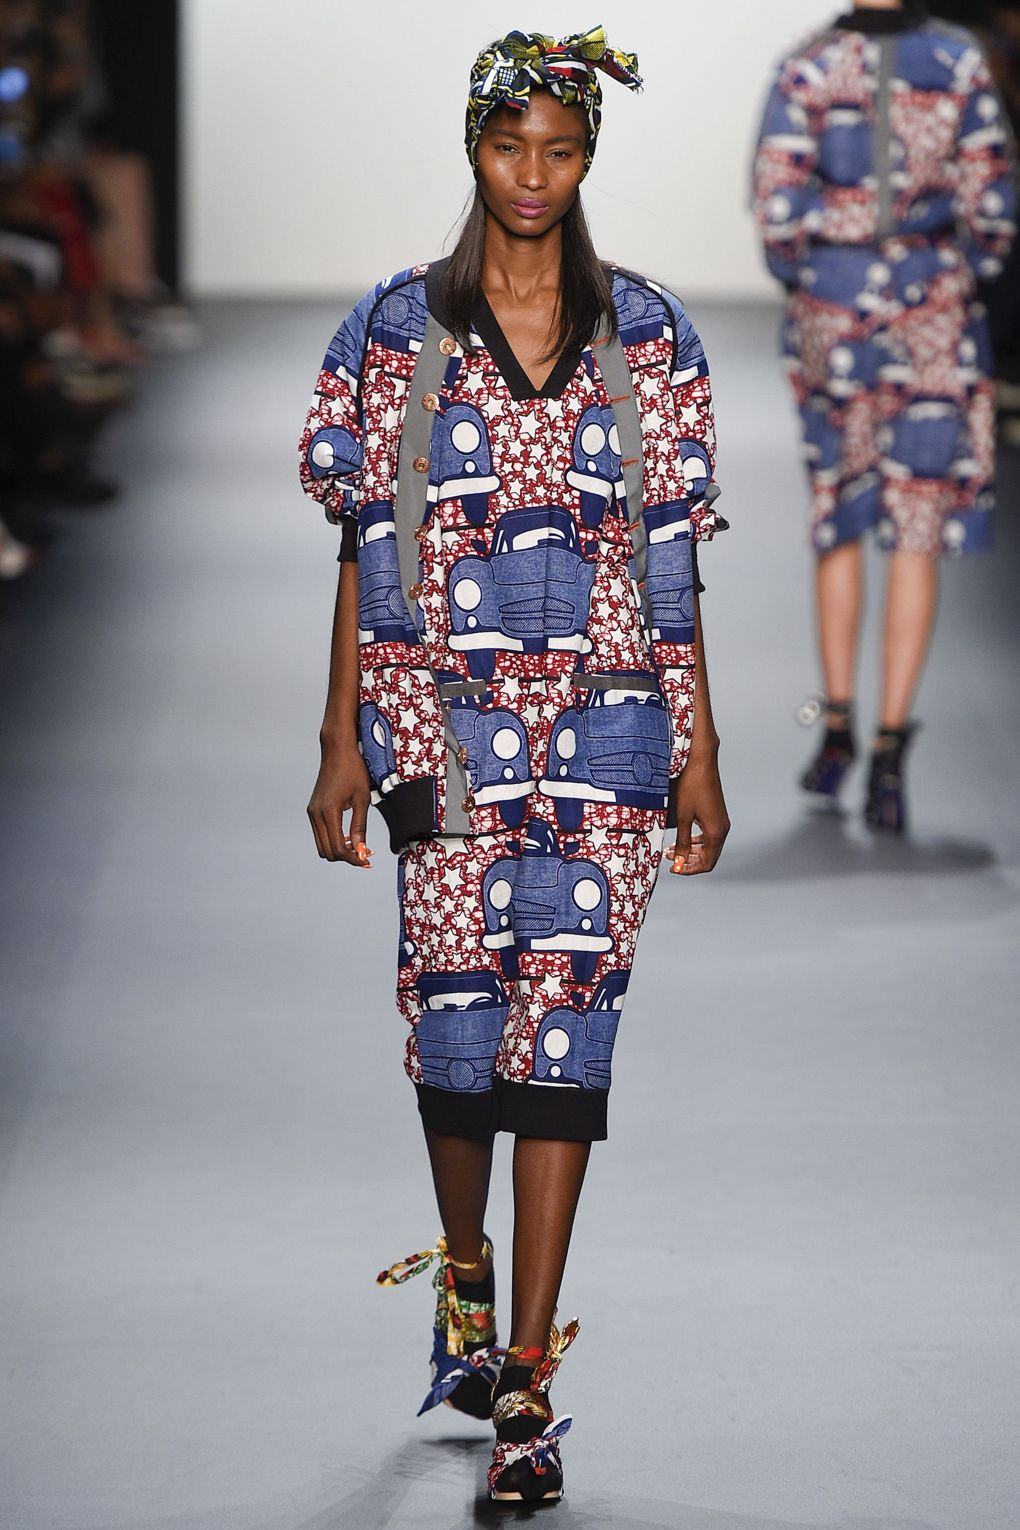 fashion-week-xuly-be%cc%88t-xuly-be%cc%88t-sprigsummer-2016-ready-to-wear-collection-17